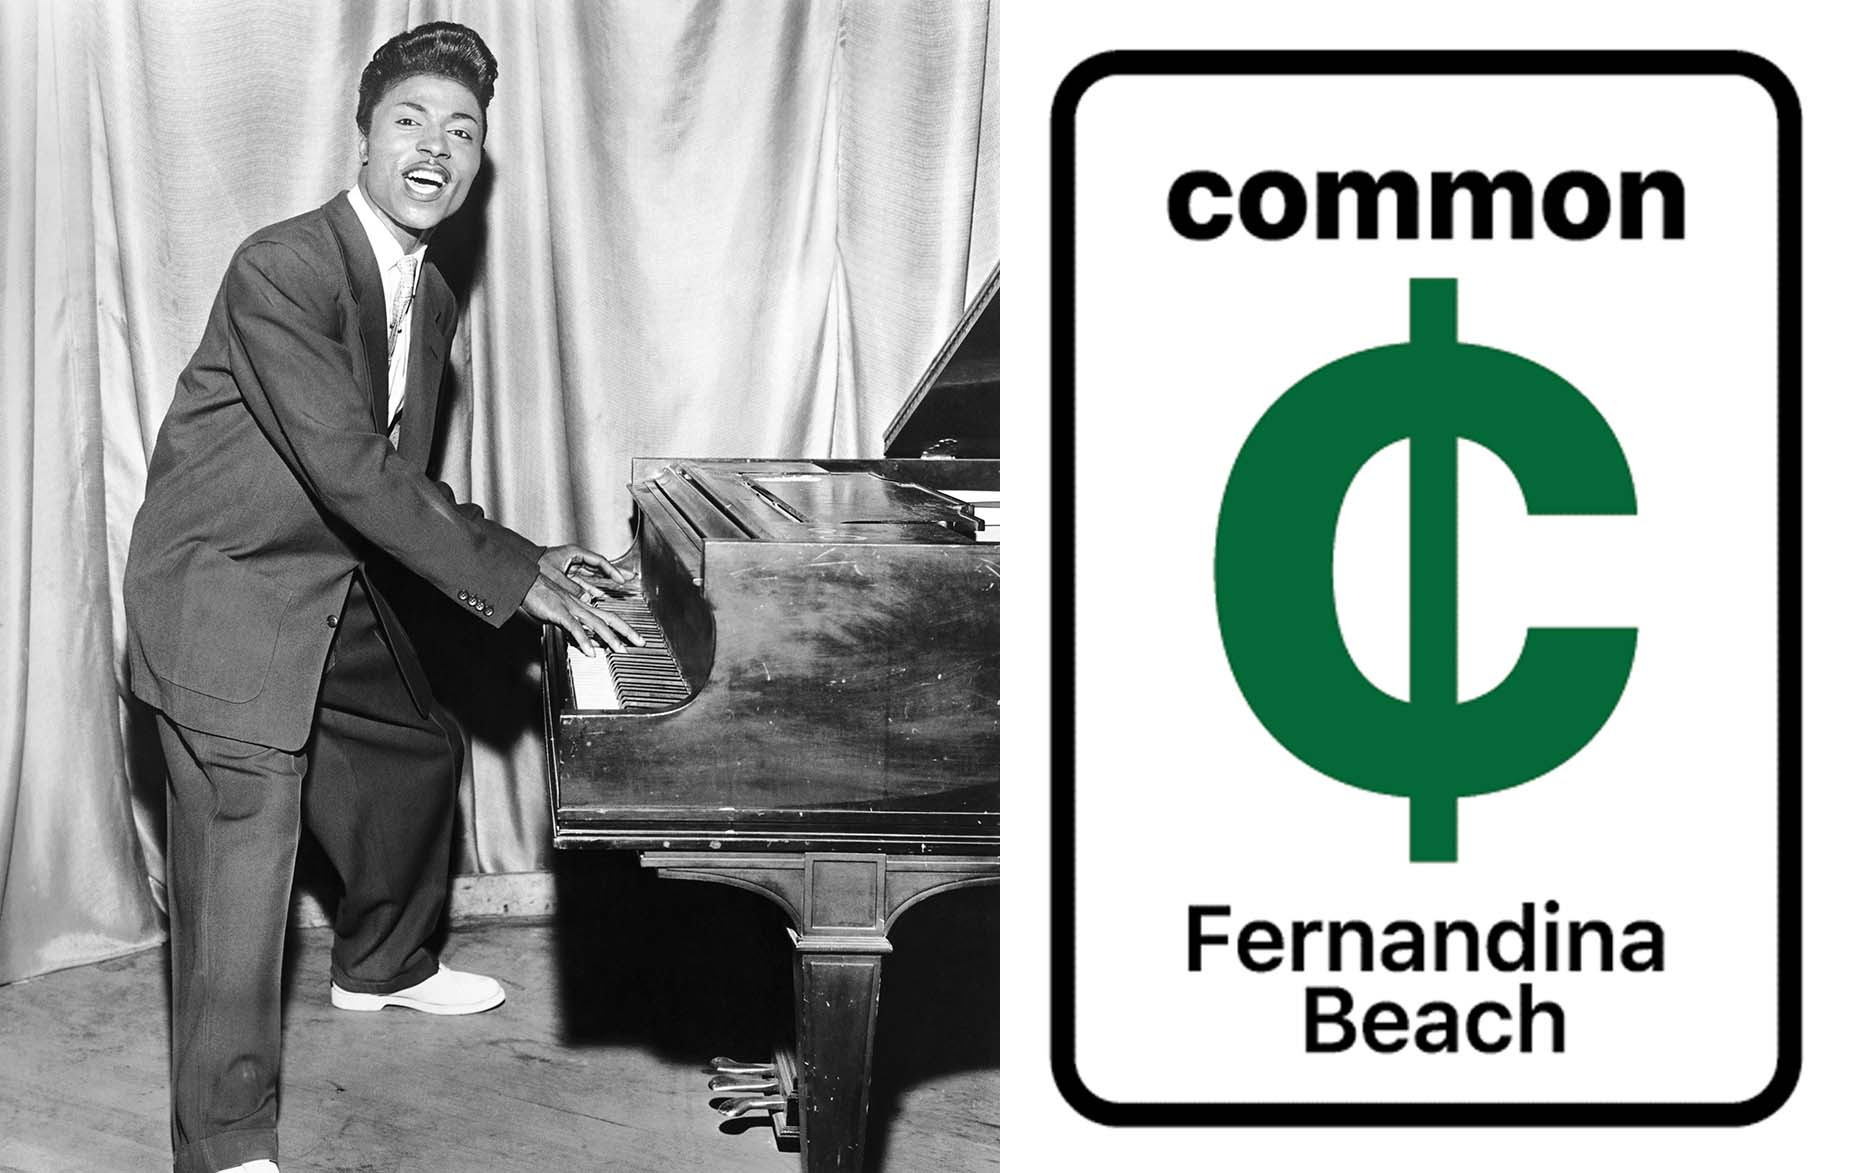 """""""Good Golly Miss Molly"""" Little Richard Died! Common Cents Aim Of Common Sense Group"""